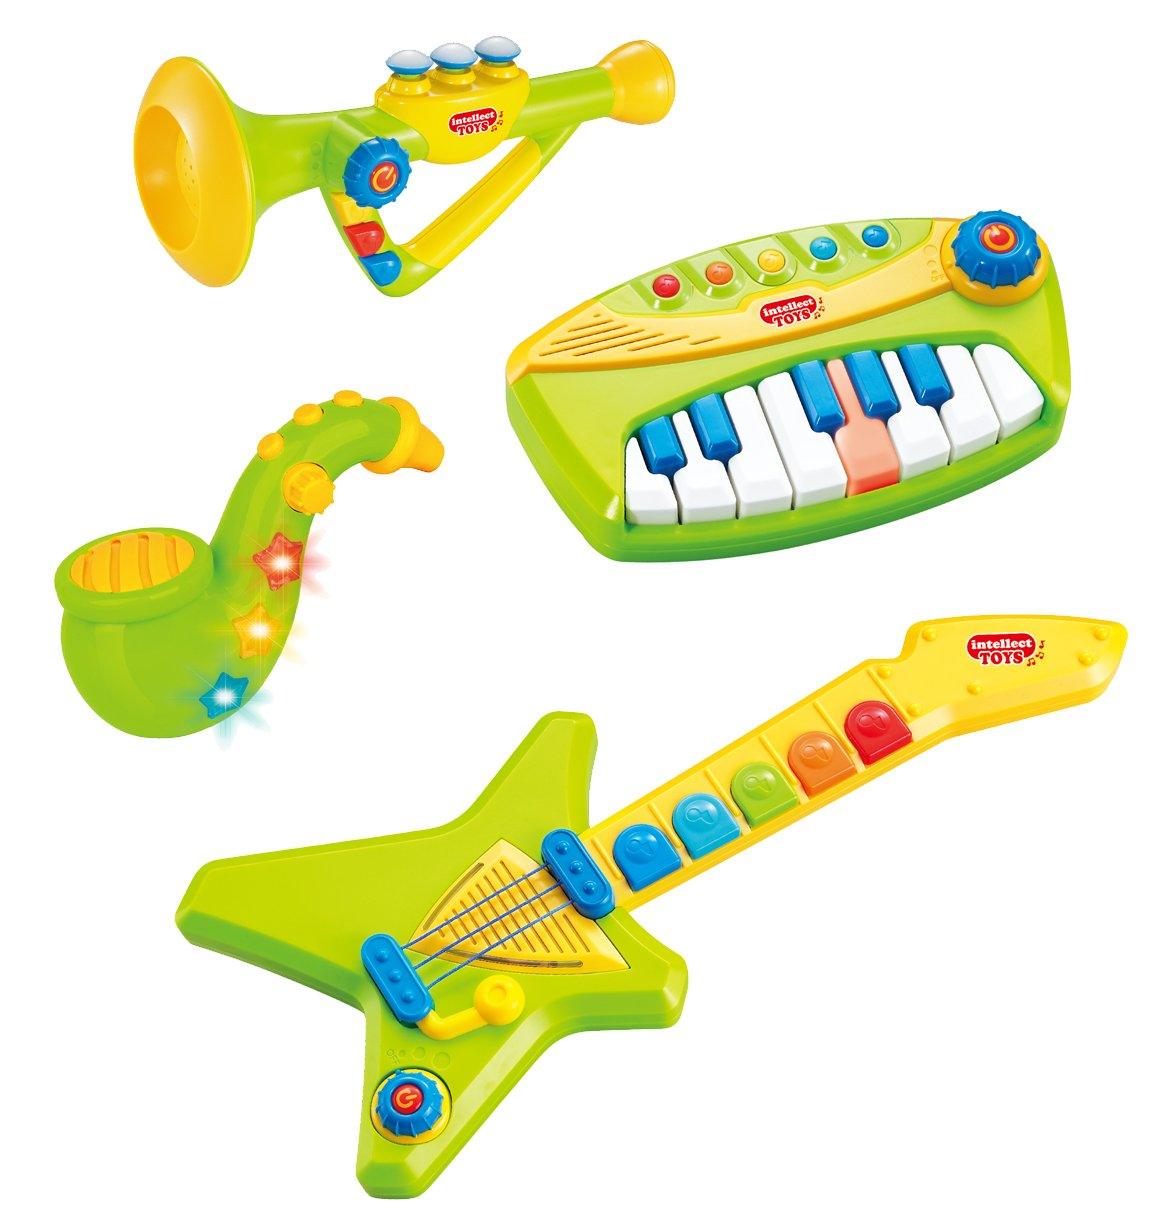 Liberty Imports 4-Piece Band Musical Toy Instruments Playset for Kids - Keyboard, Guitar, Saxophone and Trumpet - with Volume Control (Green) by Liberty Imports